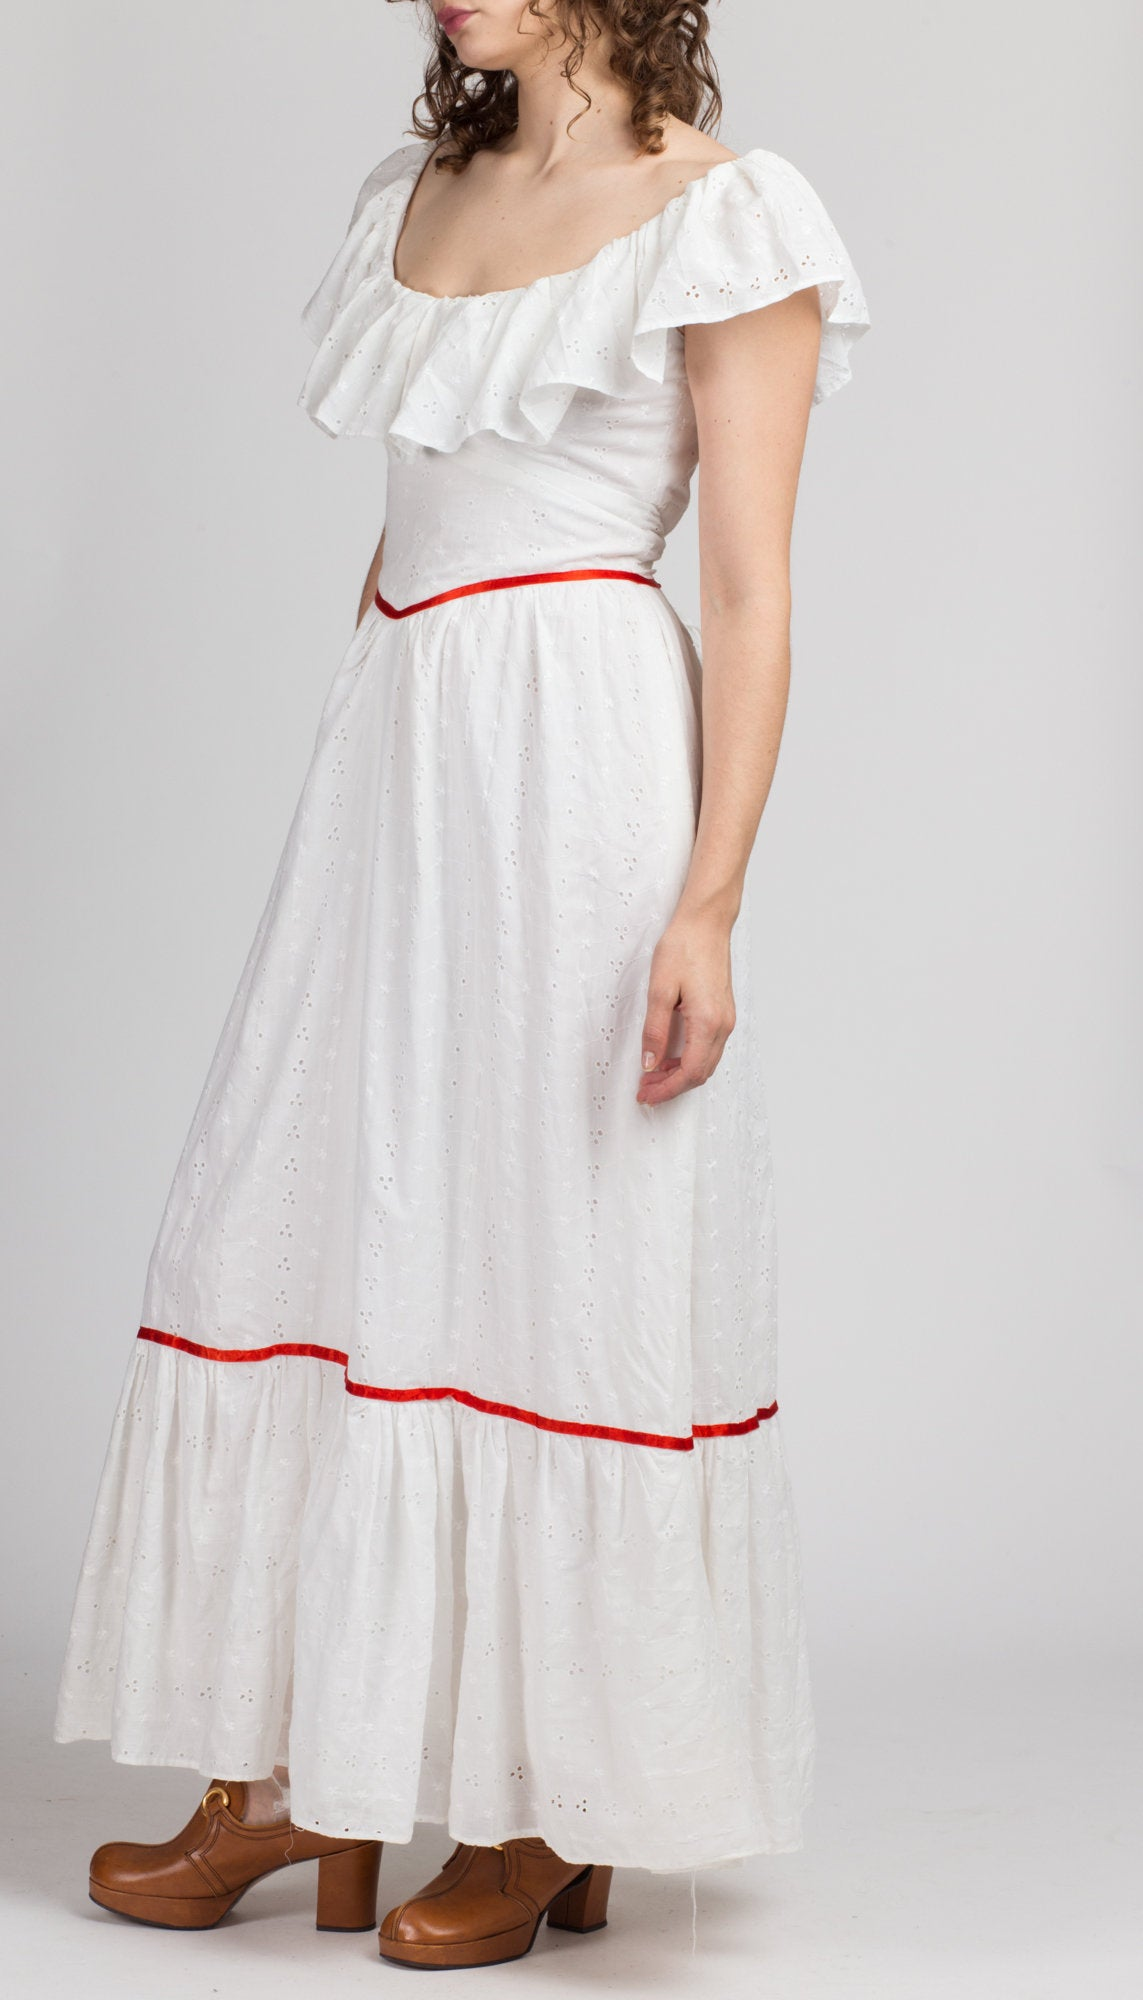 70s White Eyelet Prairie Maxi Dress - Medium